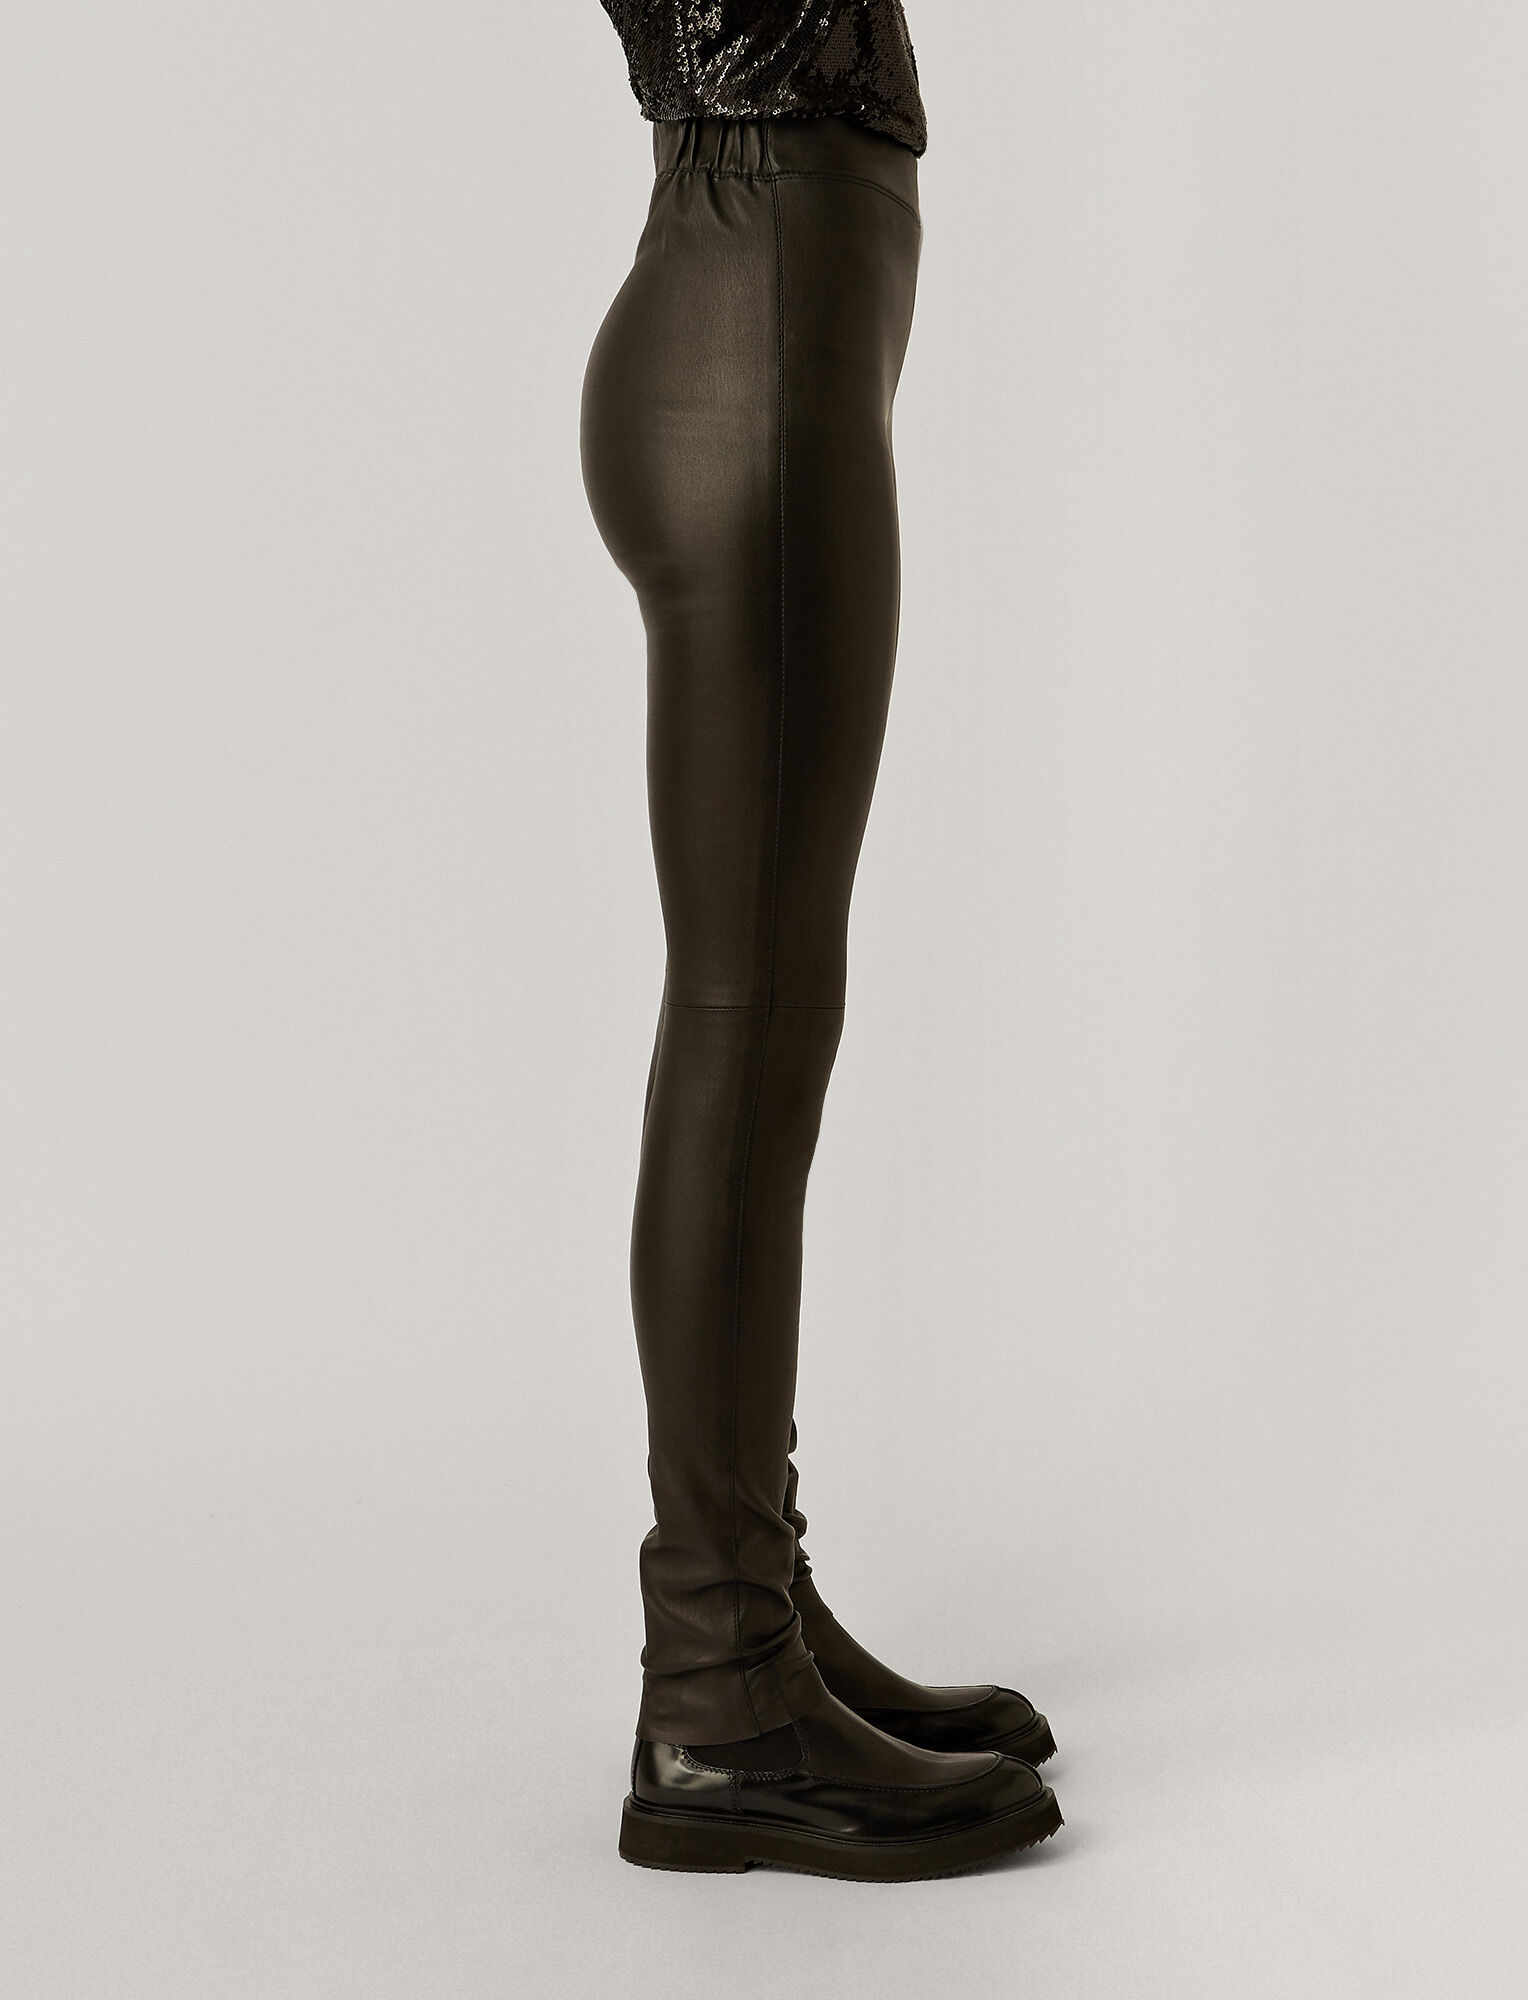 Joseph, Stretch Leather Legging, in BLACK